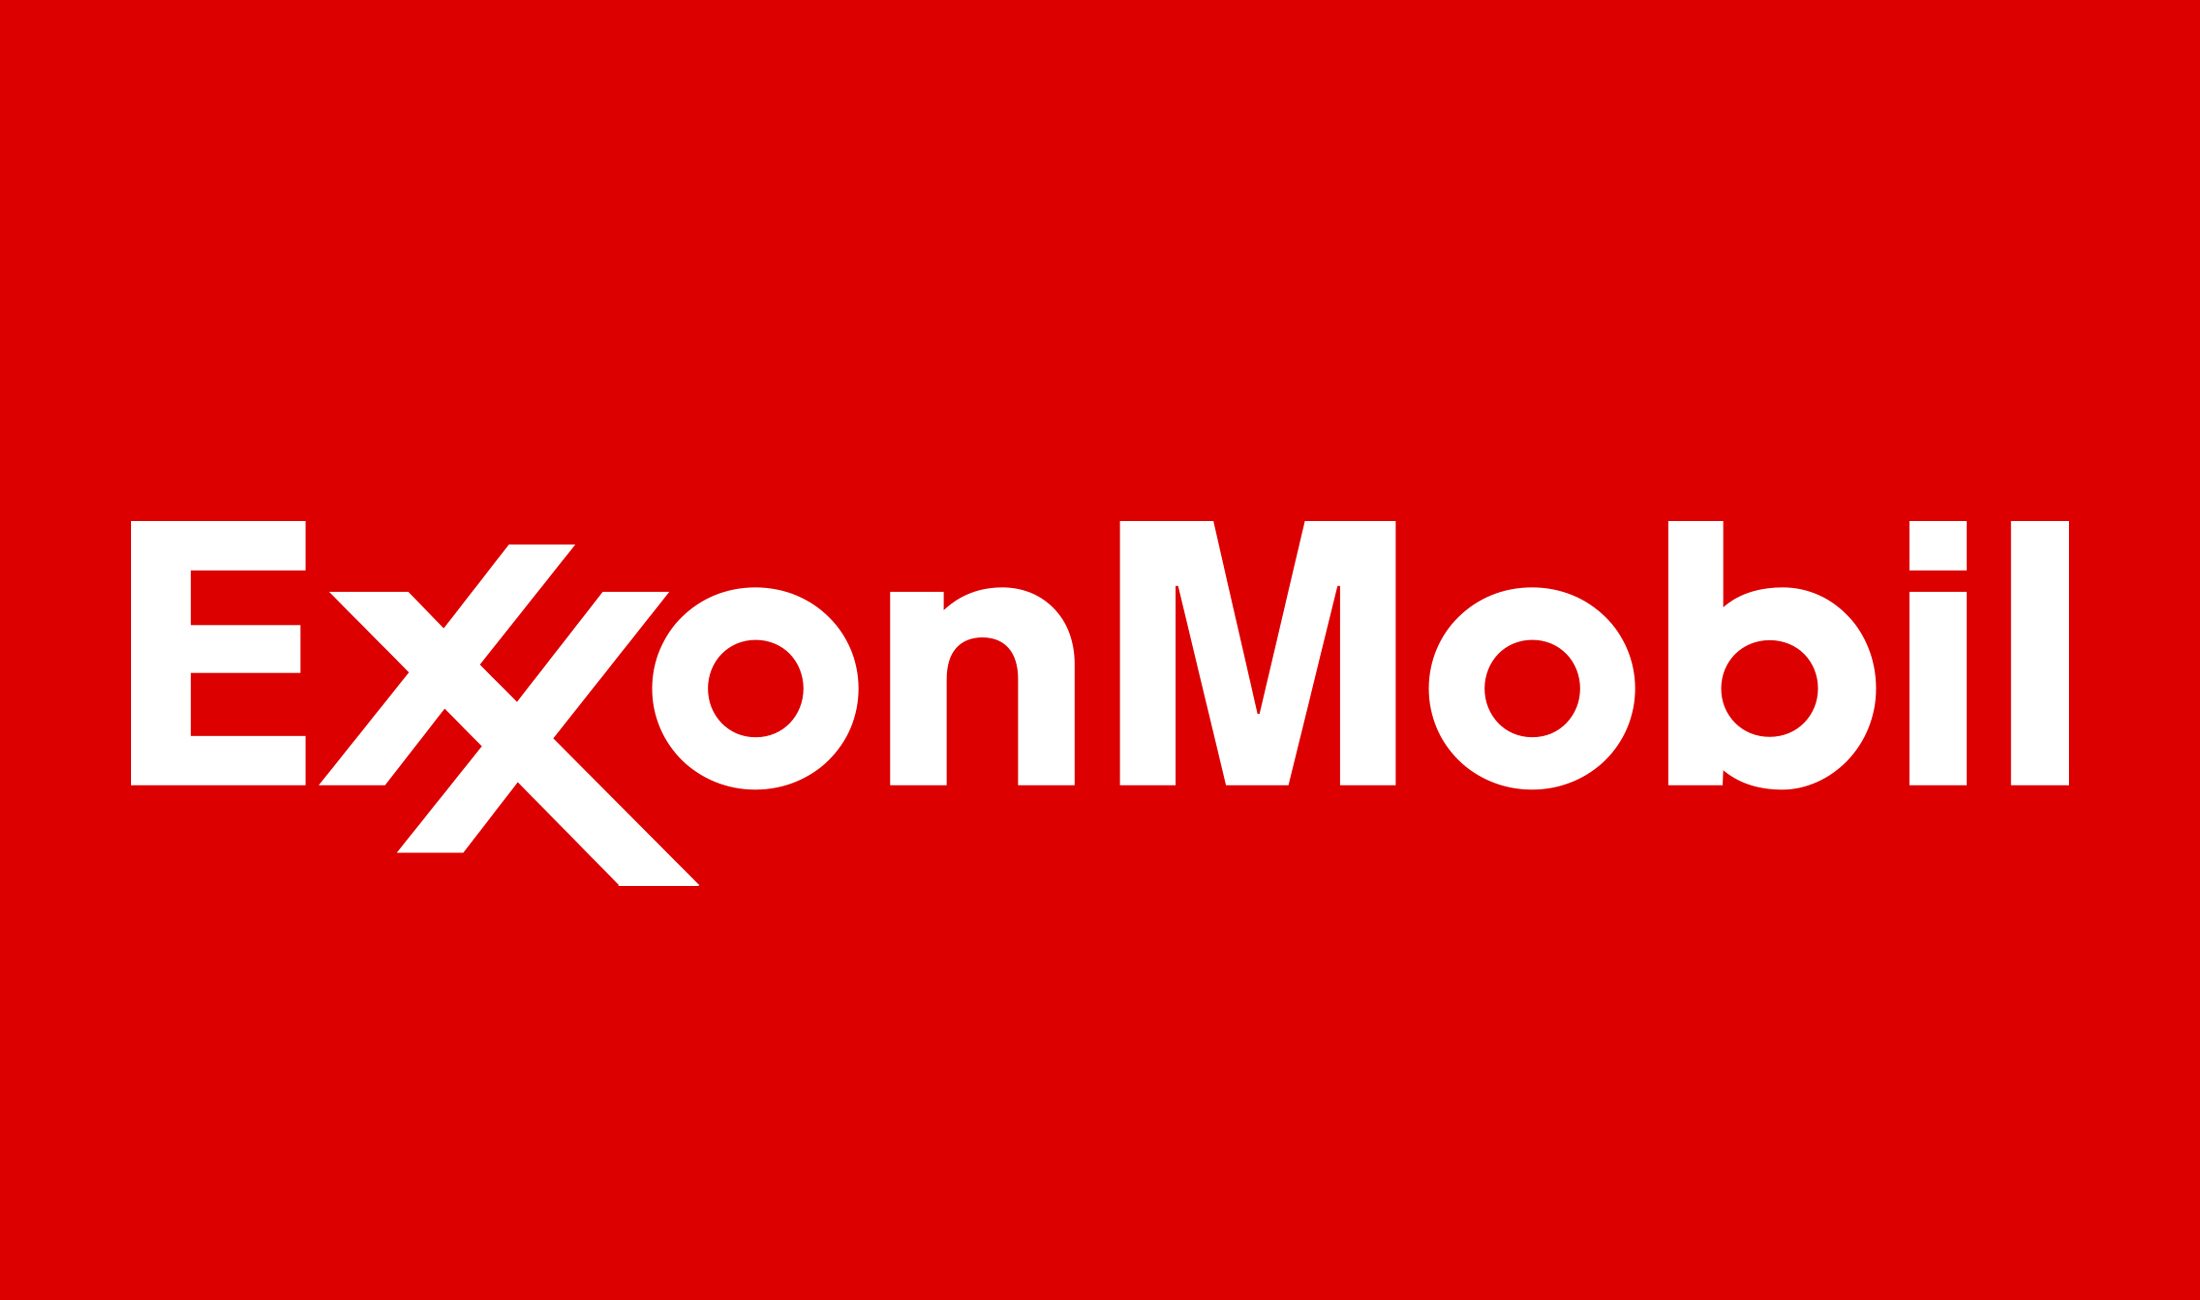 ExxonMobil Hiring | Dynamics Engineer | MS/M.tech in Naval Architecture/Marine/Mechanical/Aerospace/Computational Mechanics or related disciplines |